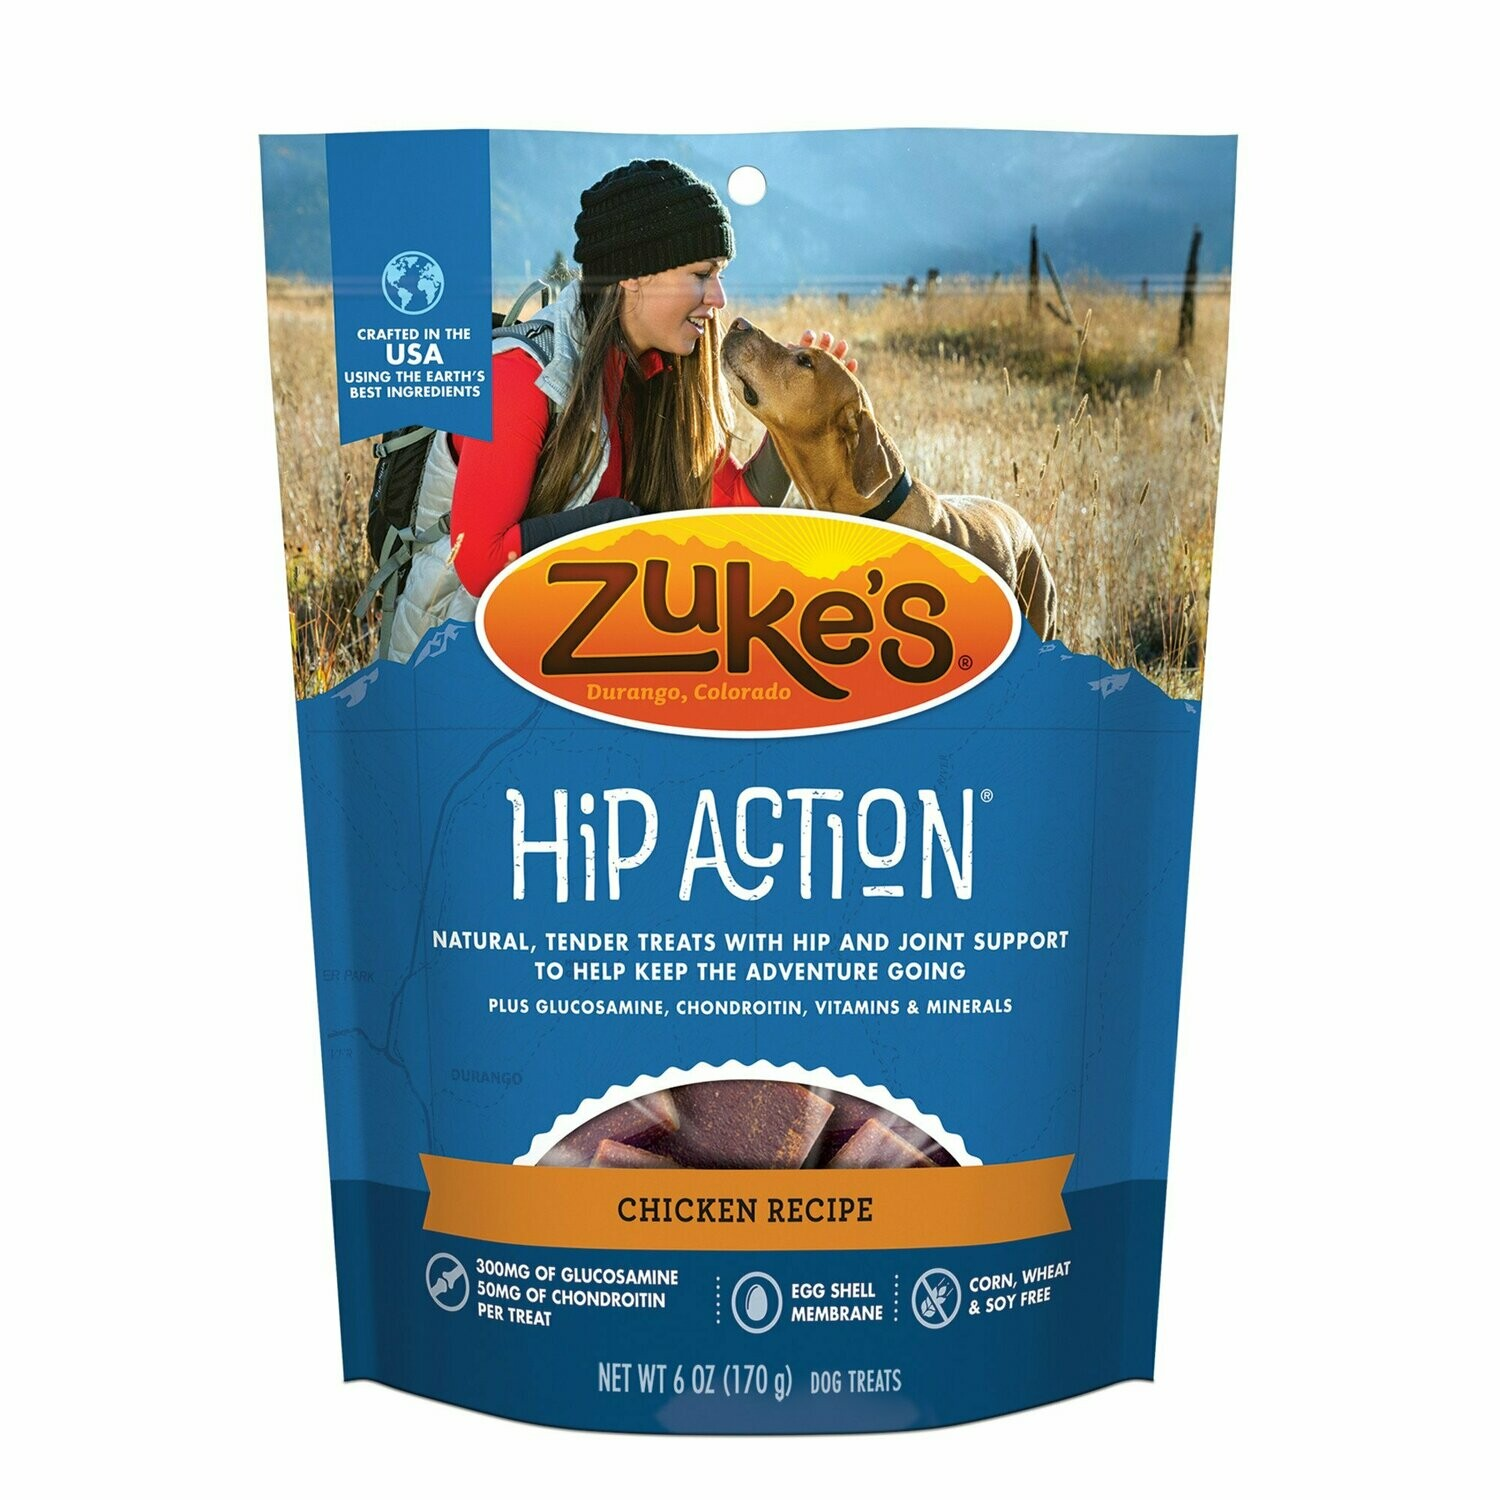 Zuke's Hip Action Hip & Joint Support Roasted Chicken Dog Treats, 6 oz. (12/19)